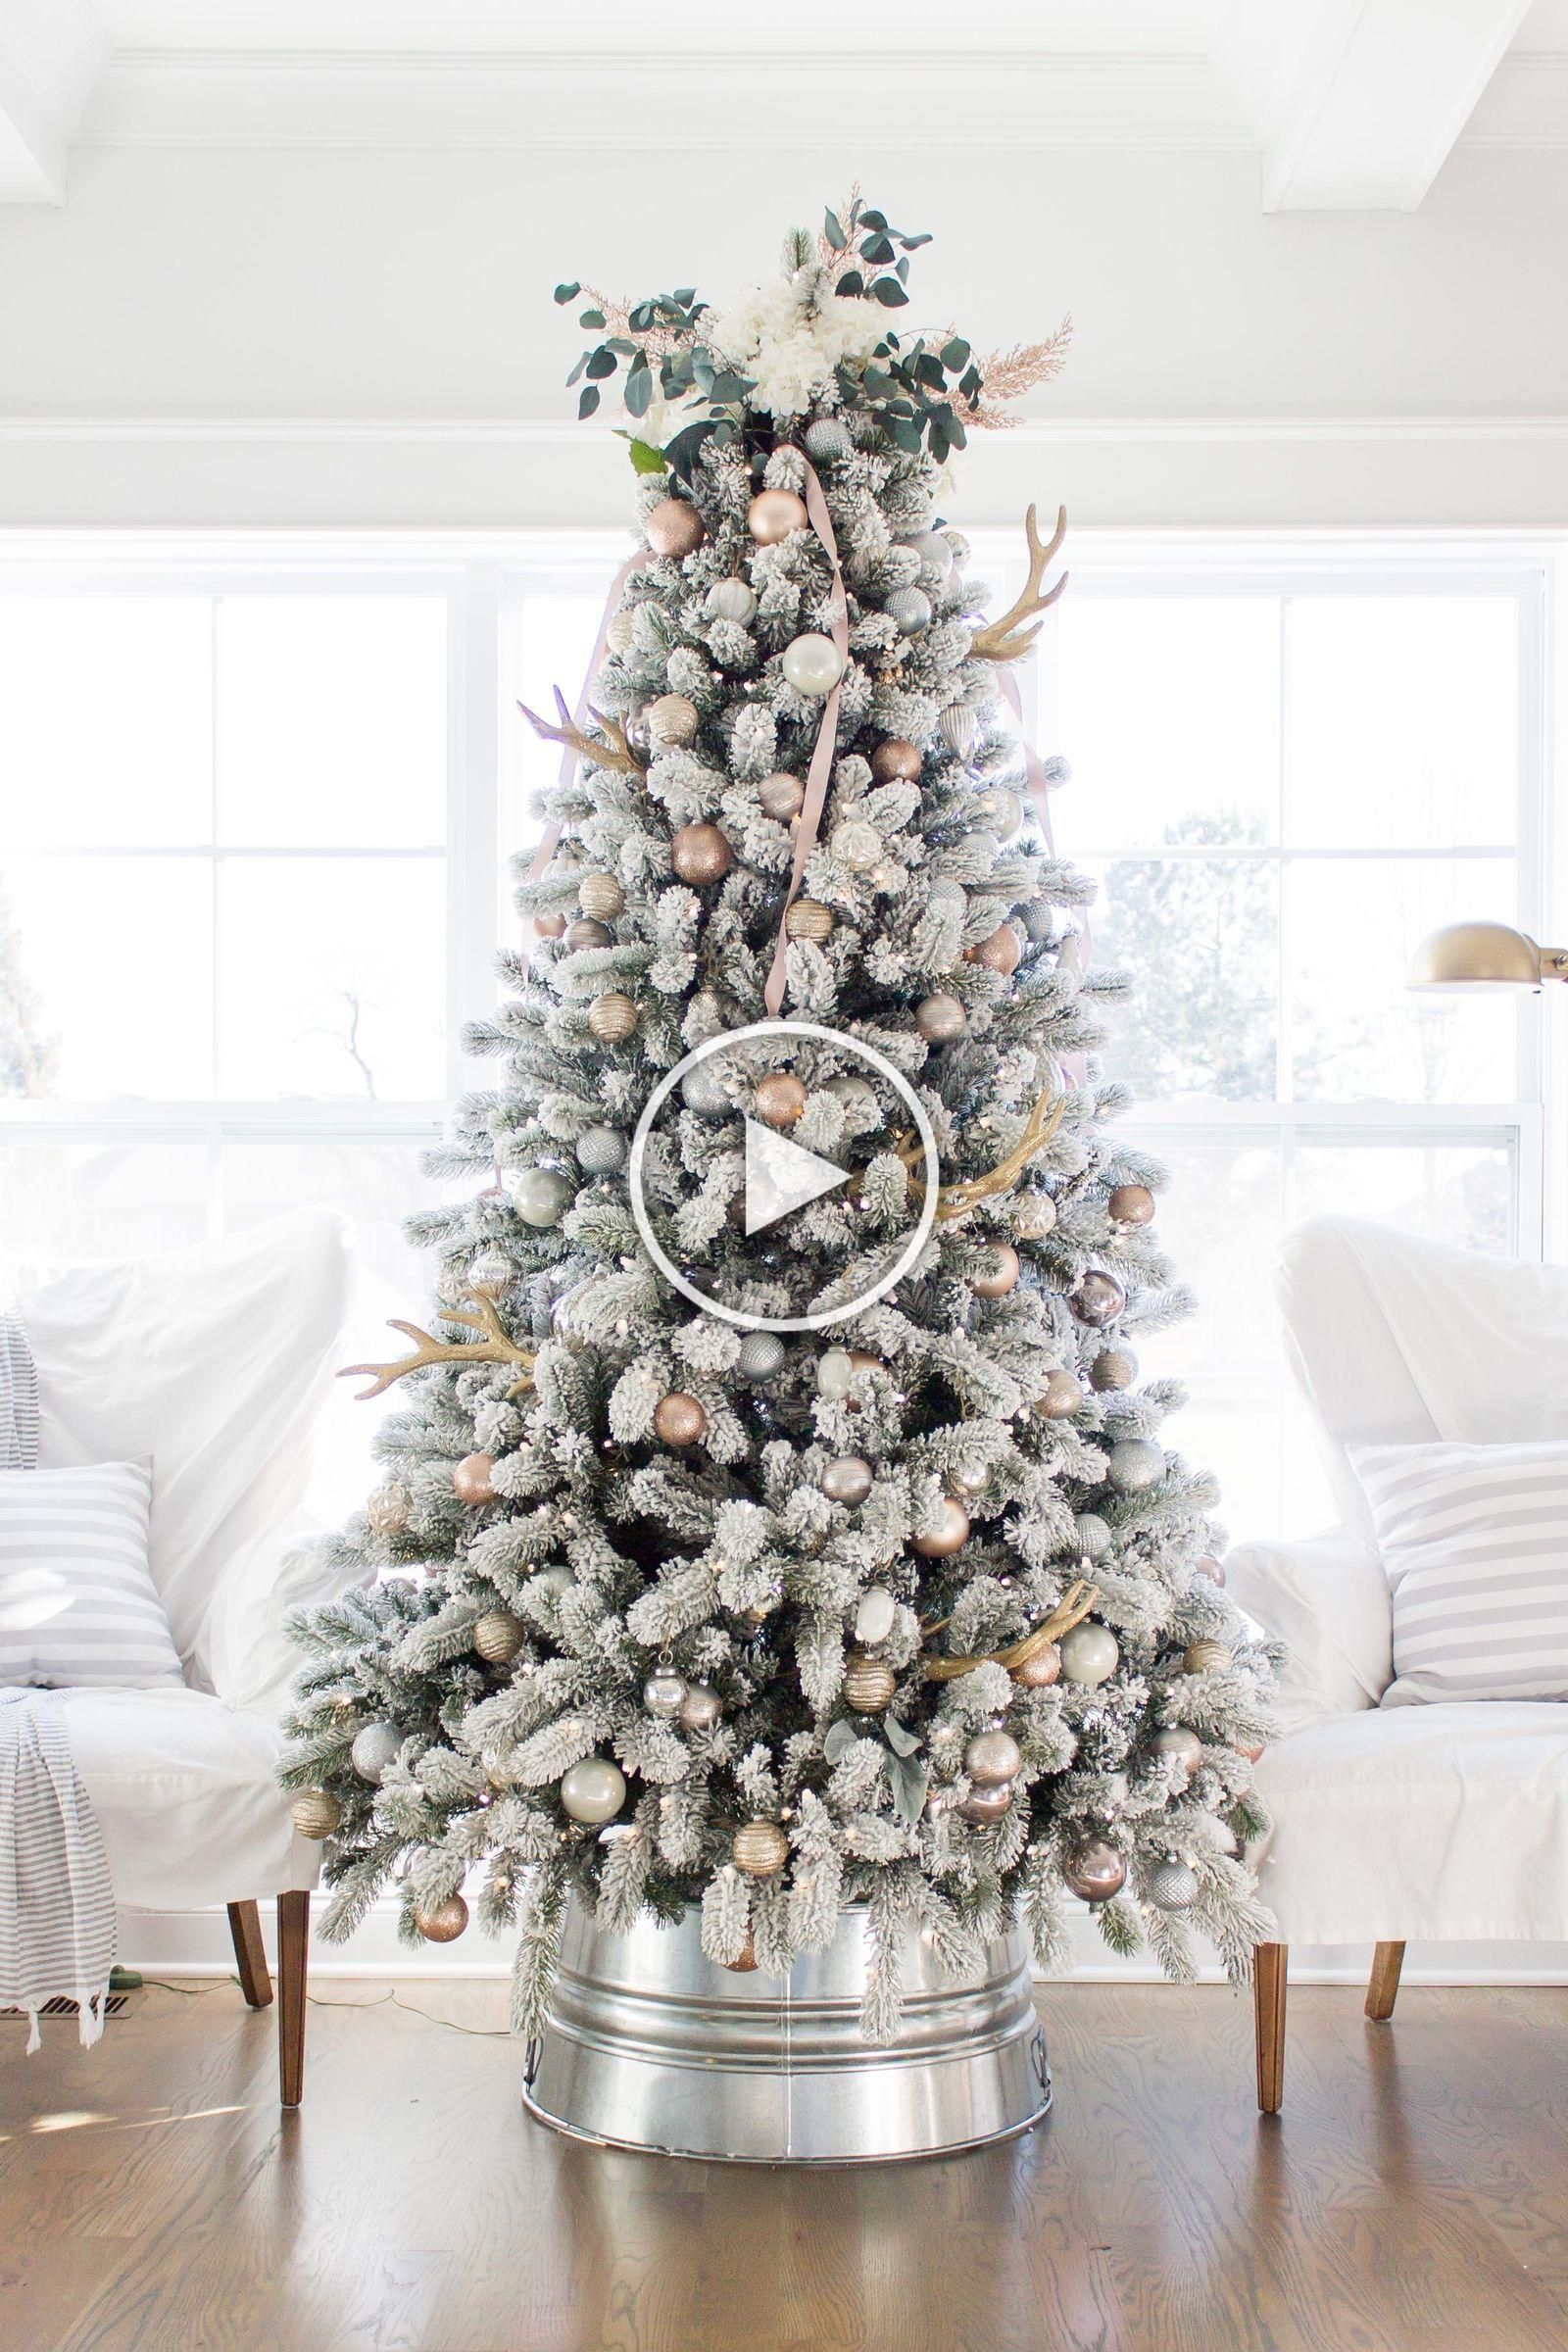 Tree skirts are pretty, but we also love these creative